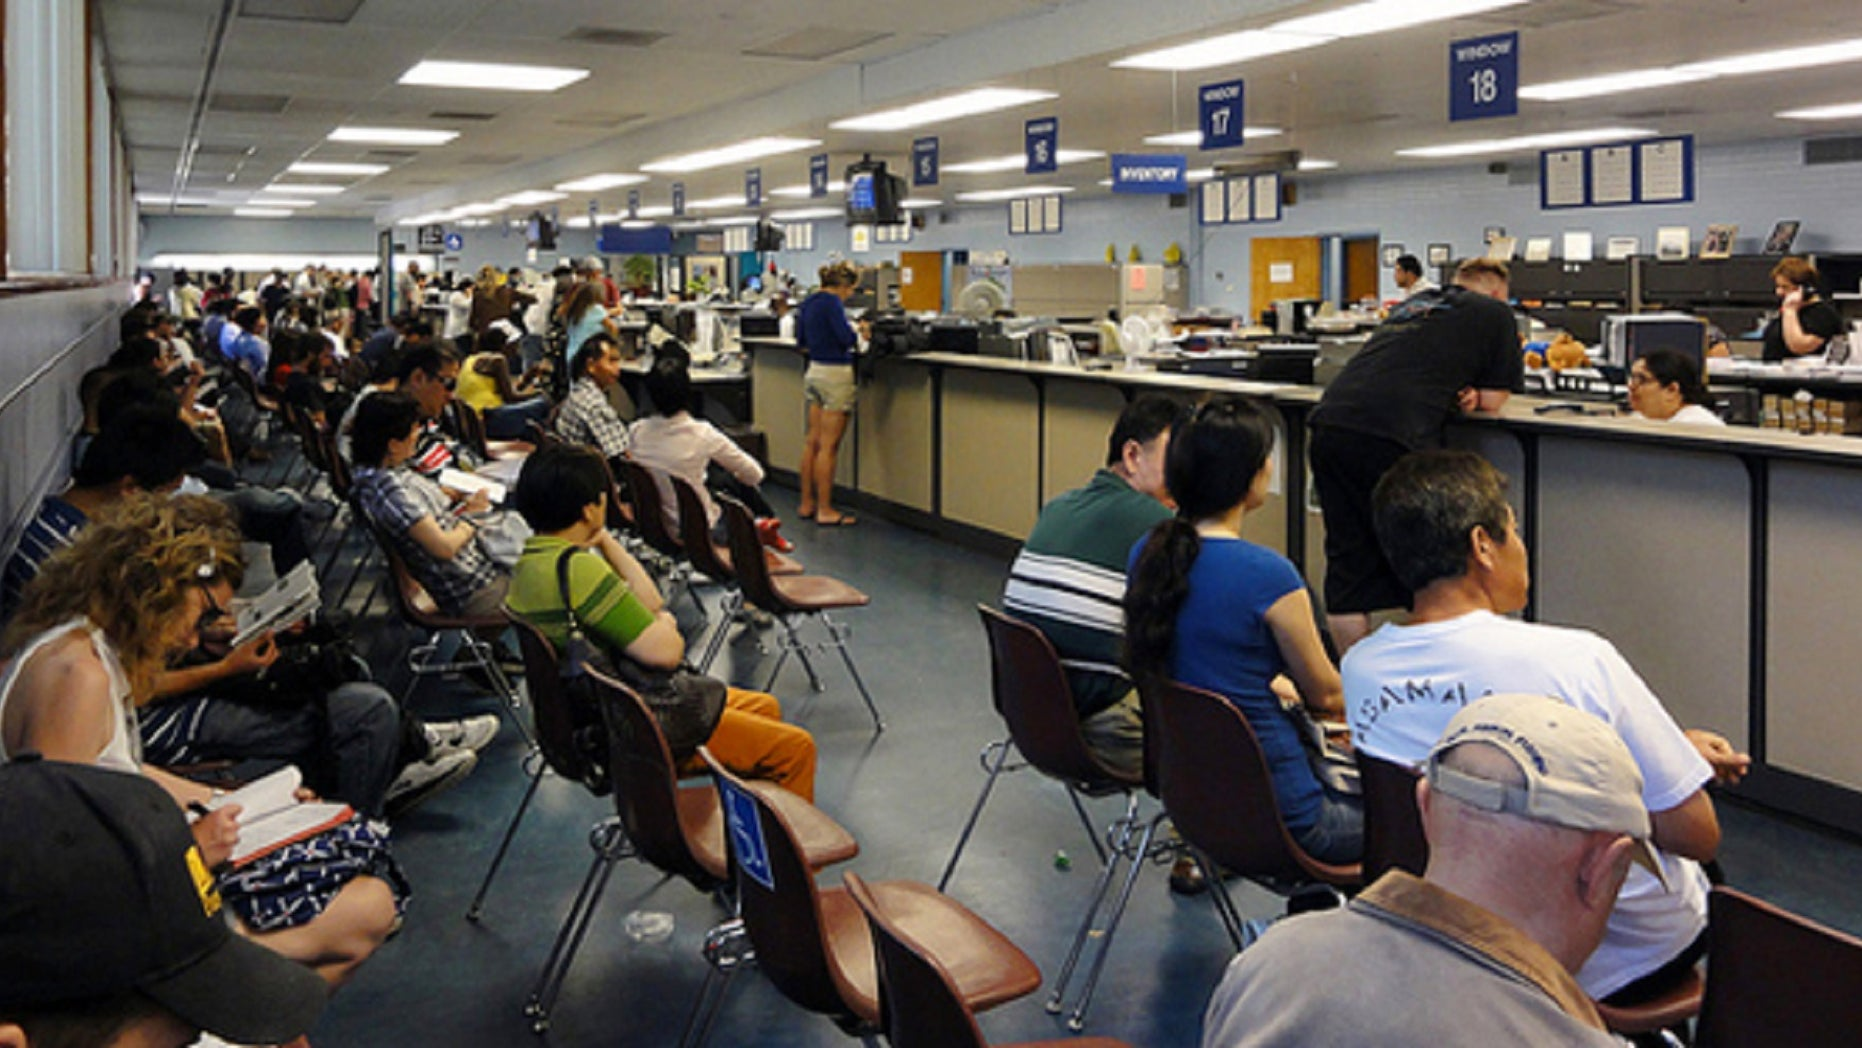 California DMV worker snoozed on job 3 hours a day for about